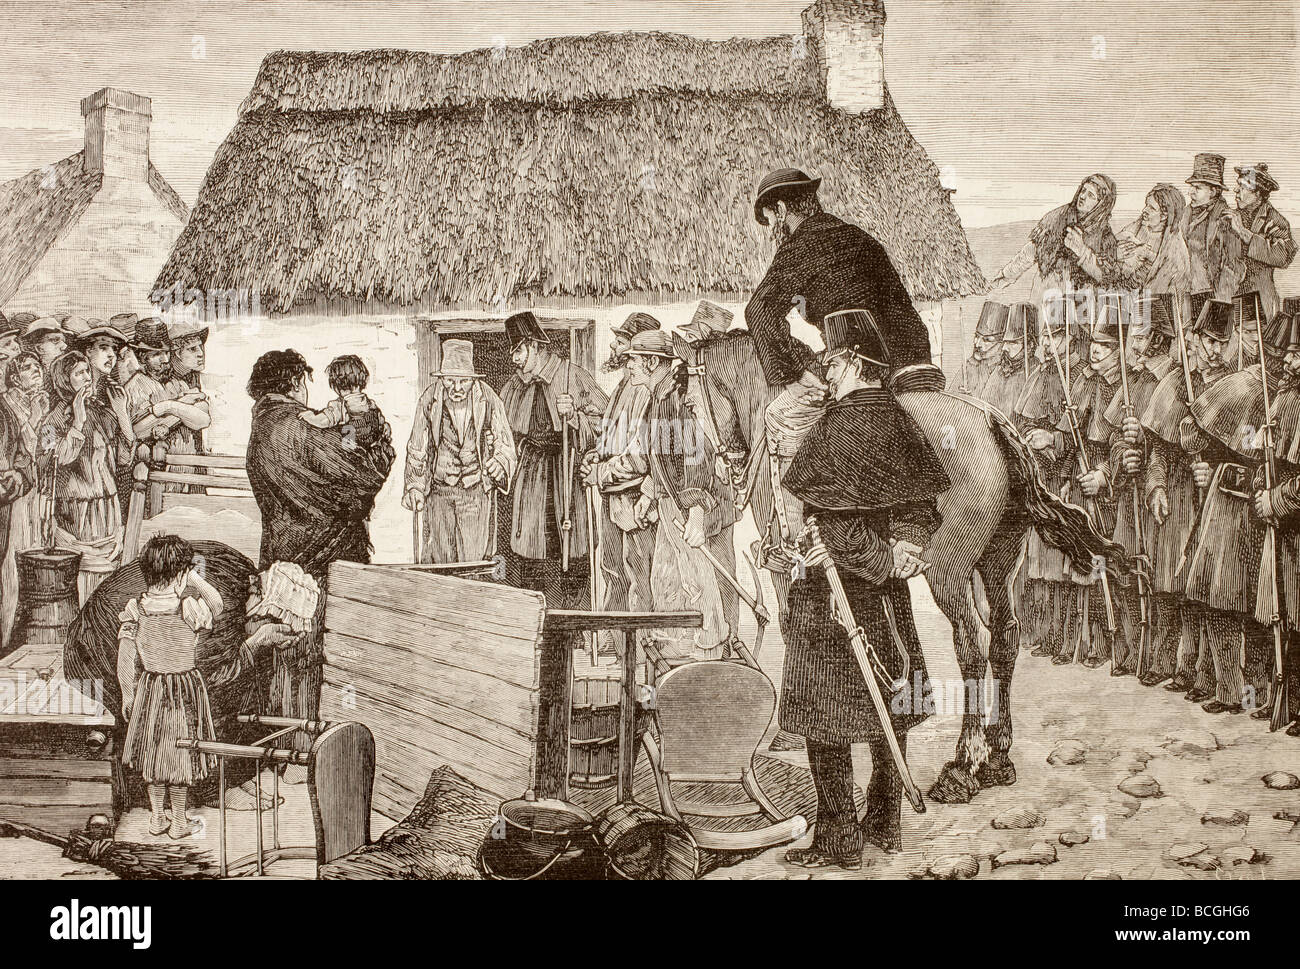 Poor tennants being evicted from their home during the Irish National Land League crisis. - Stock Image